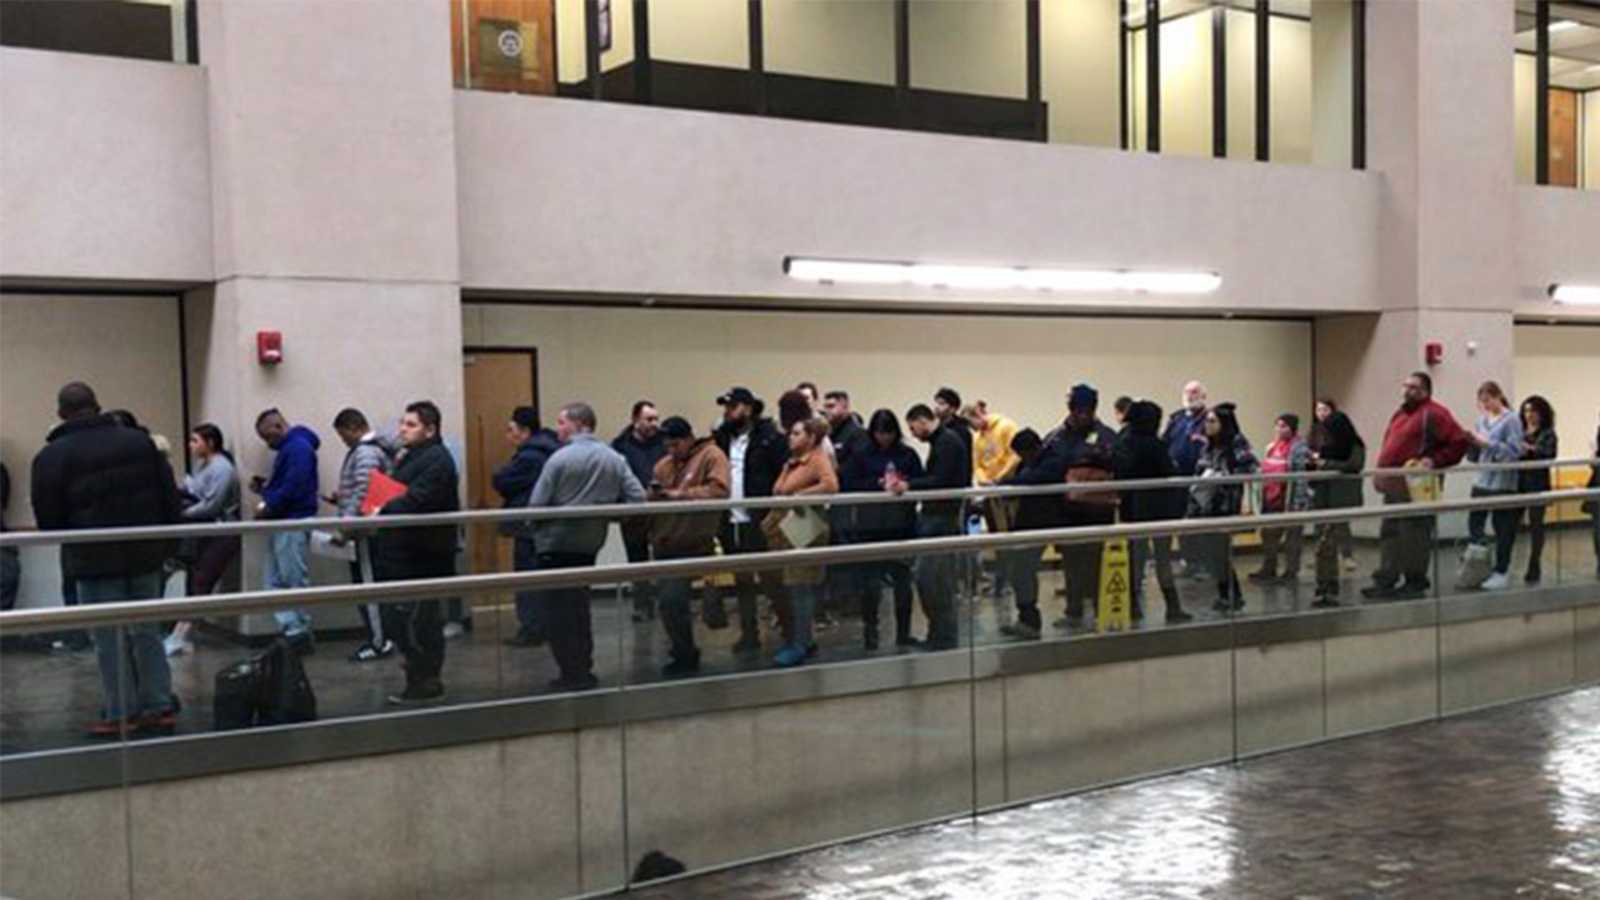 DMV service in New York hit by national outage